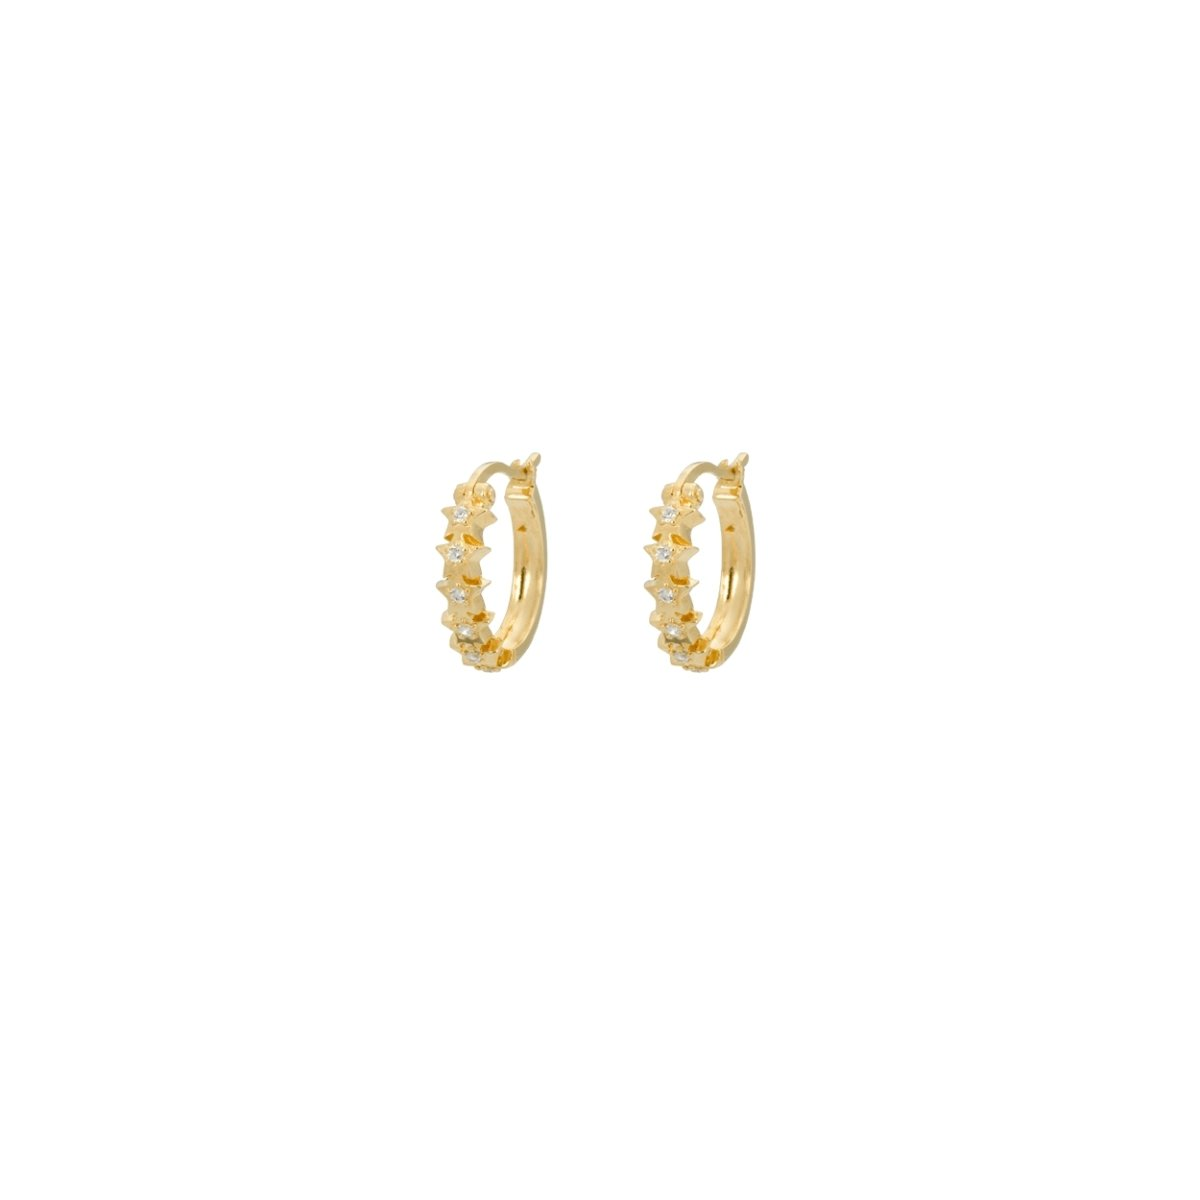 Trendjuwelier Bemelmans - Anna+Nina Starry Ring Earring Goldplated